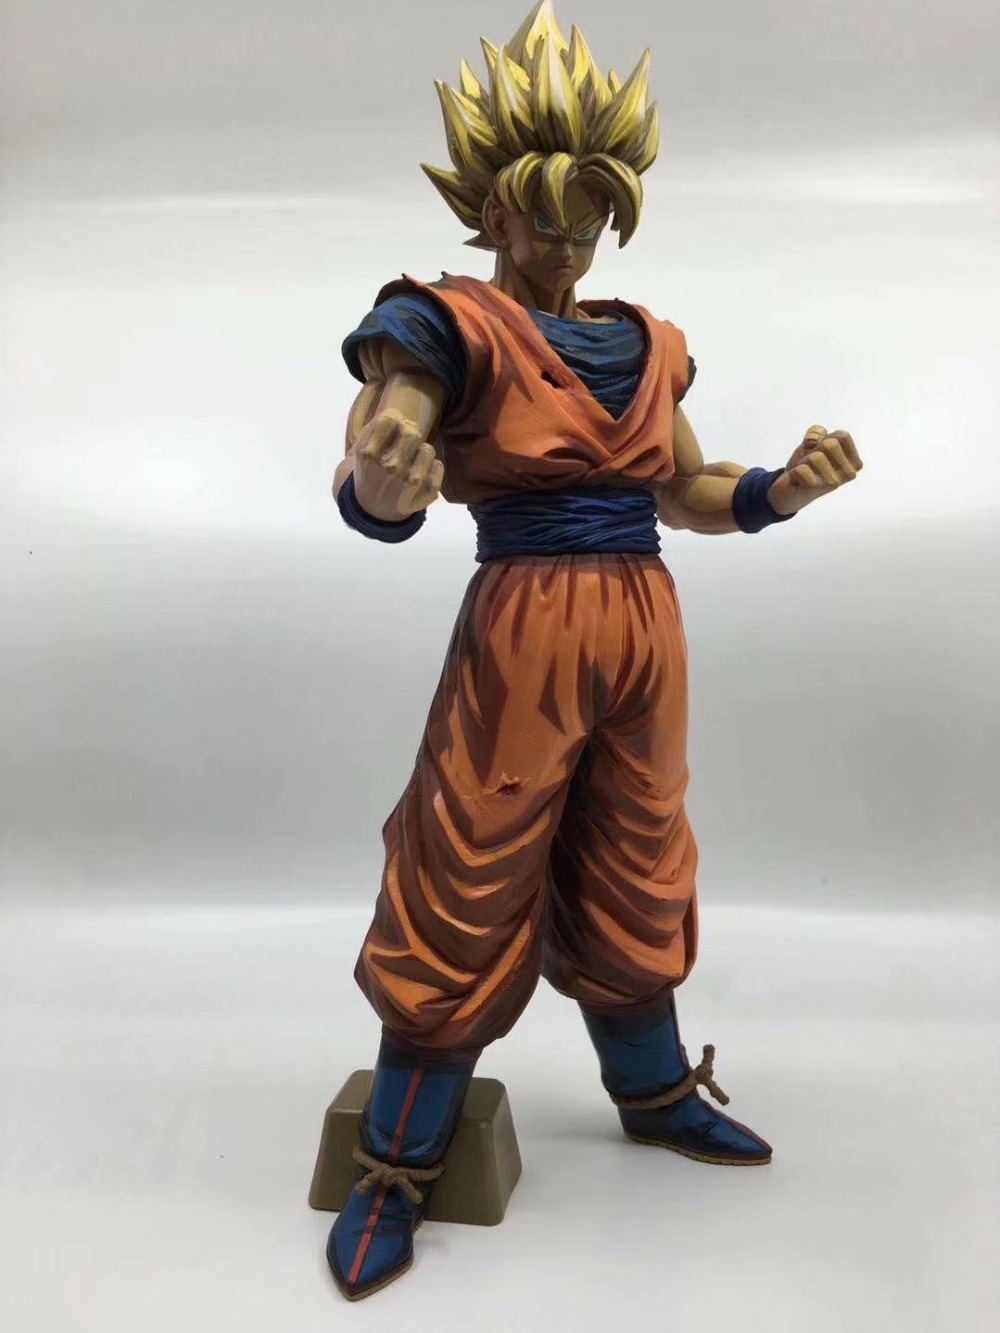 Strong-Willed Dragon Ball Figure Son Goku Figure Songoku Msp Comic Super Saiyan Figure Pvc 280mm Dragon Ball Z Action Figure Dbz Dragonball Z Skillful Manufacture Action & Toy Figures